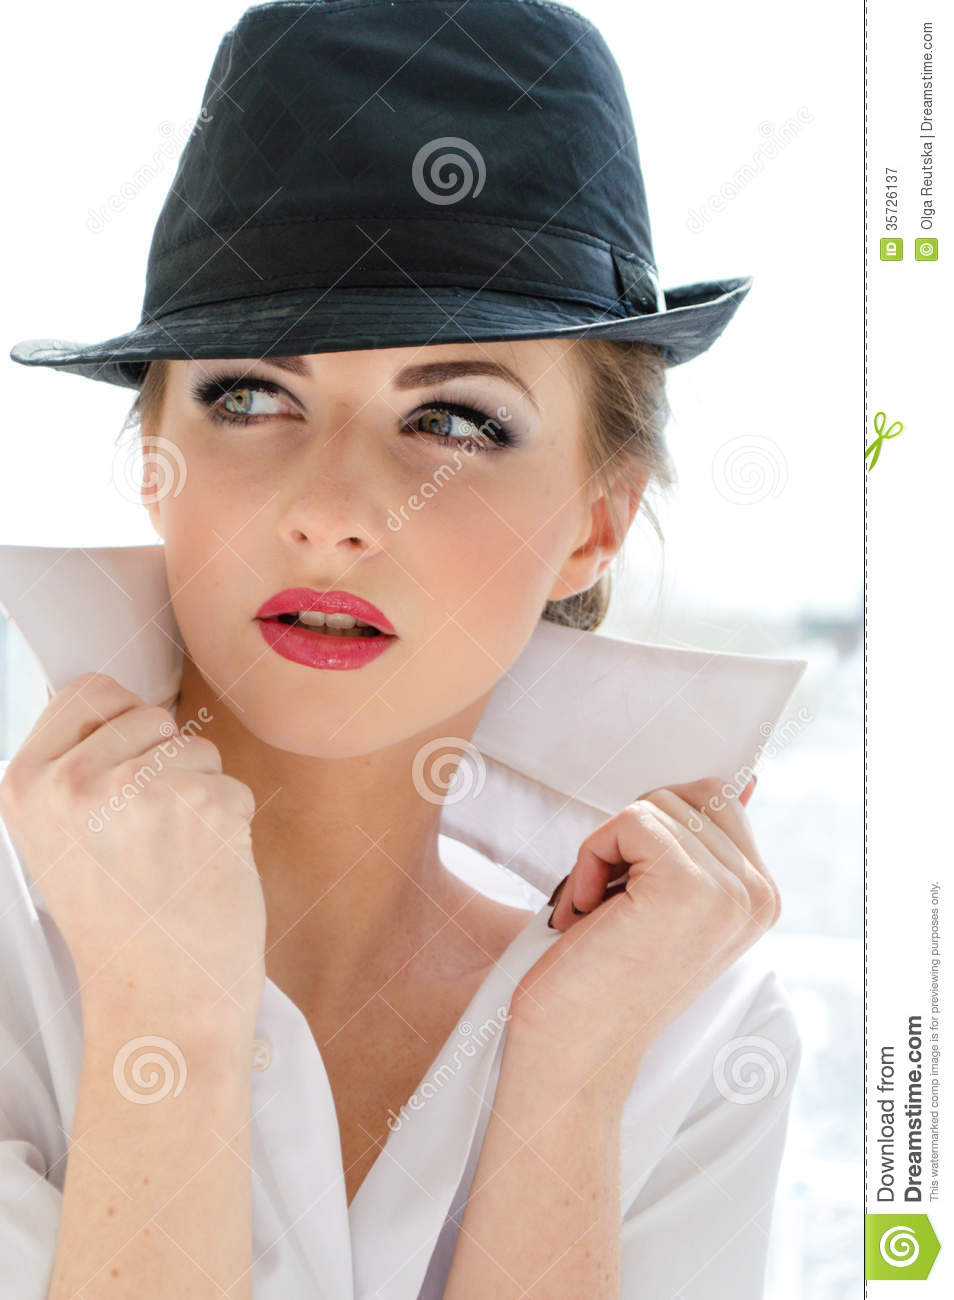 headshot-young-business-woman-wearing-man-s-shirt-hat-looking-bossy-stylish-office-white-background-35726137.jpg